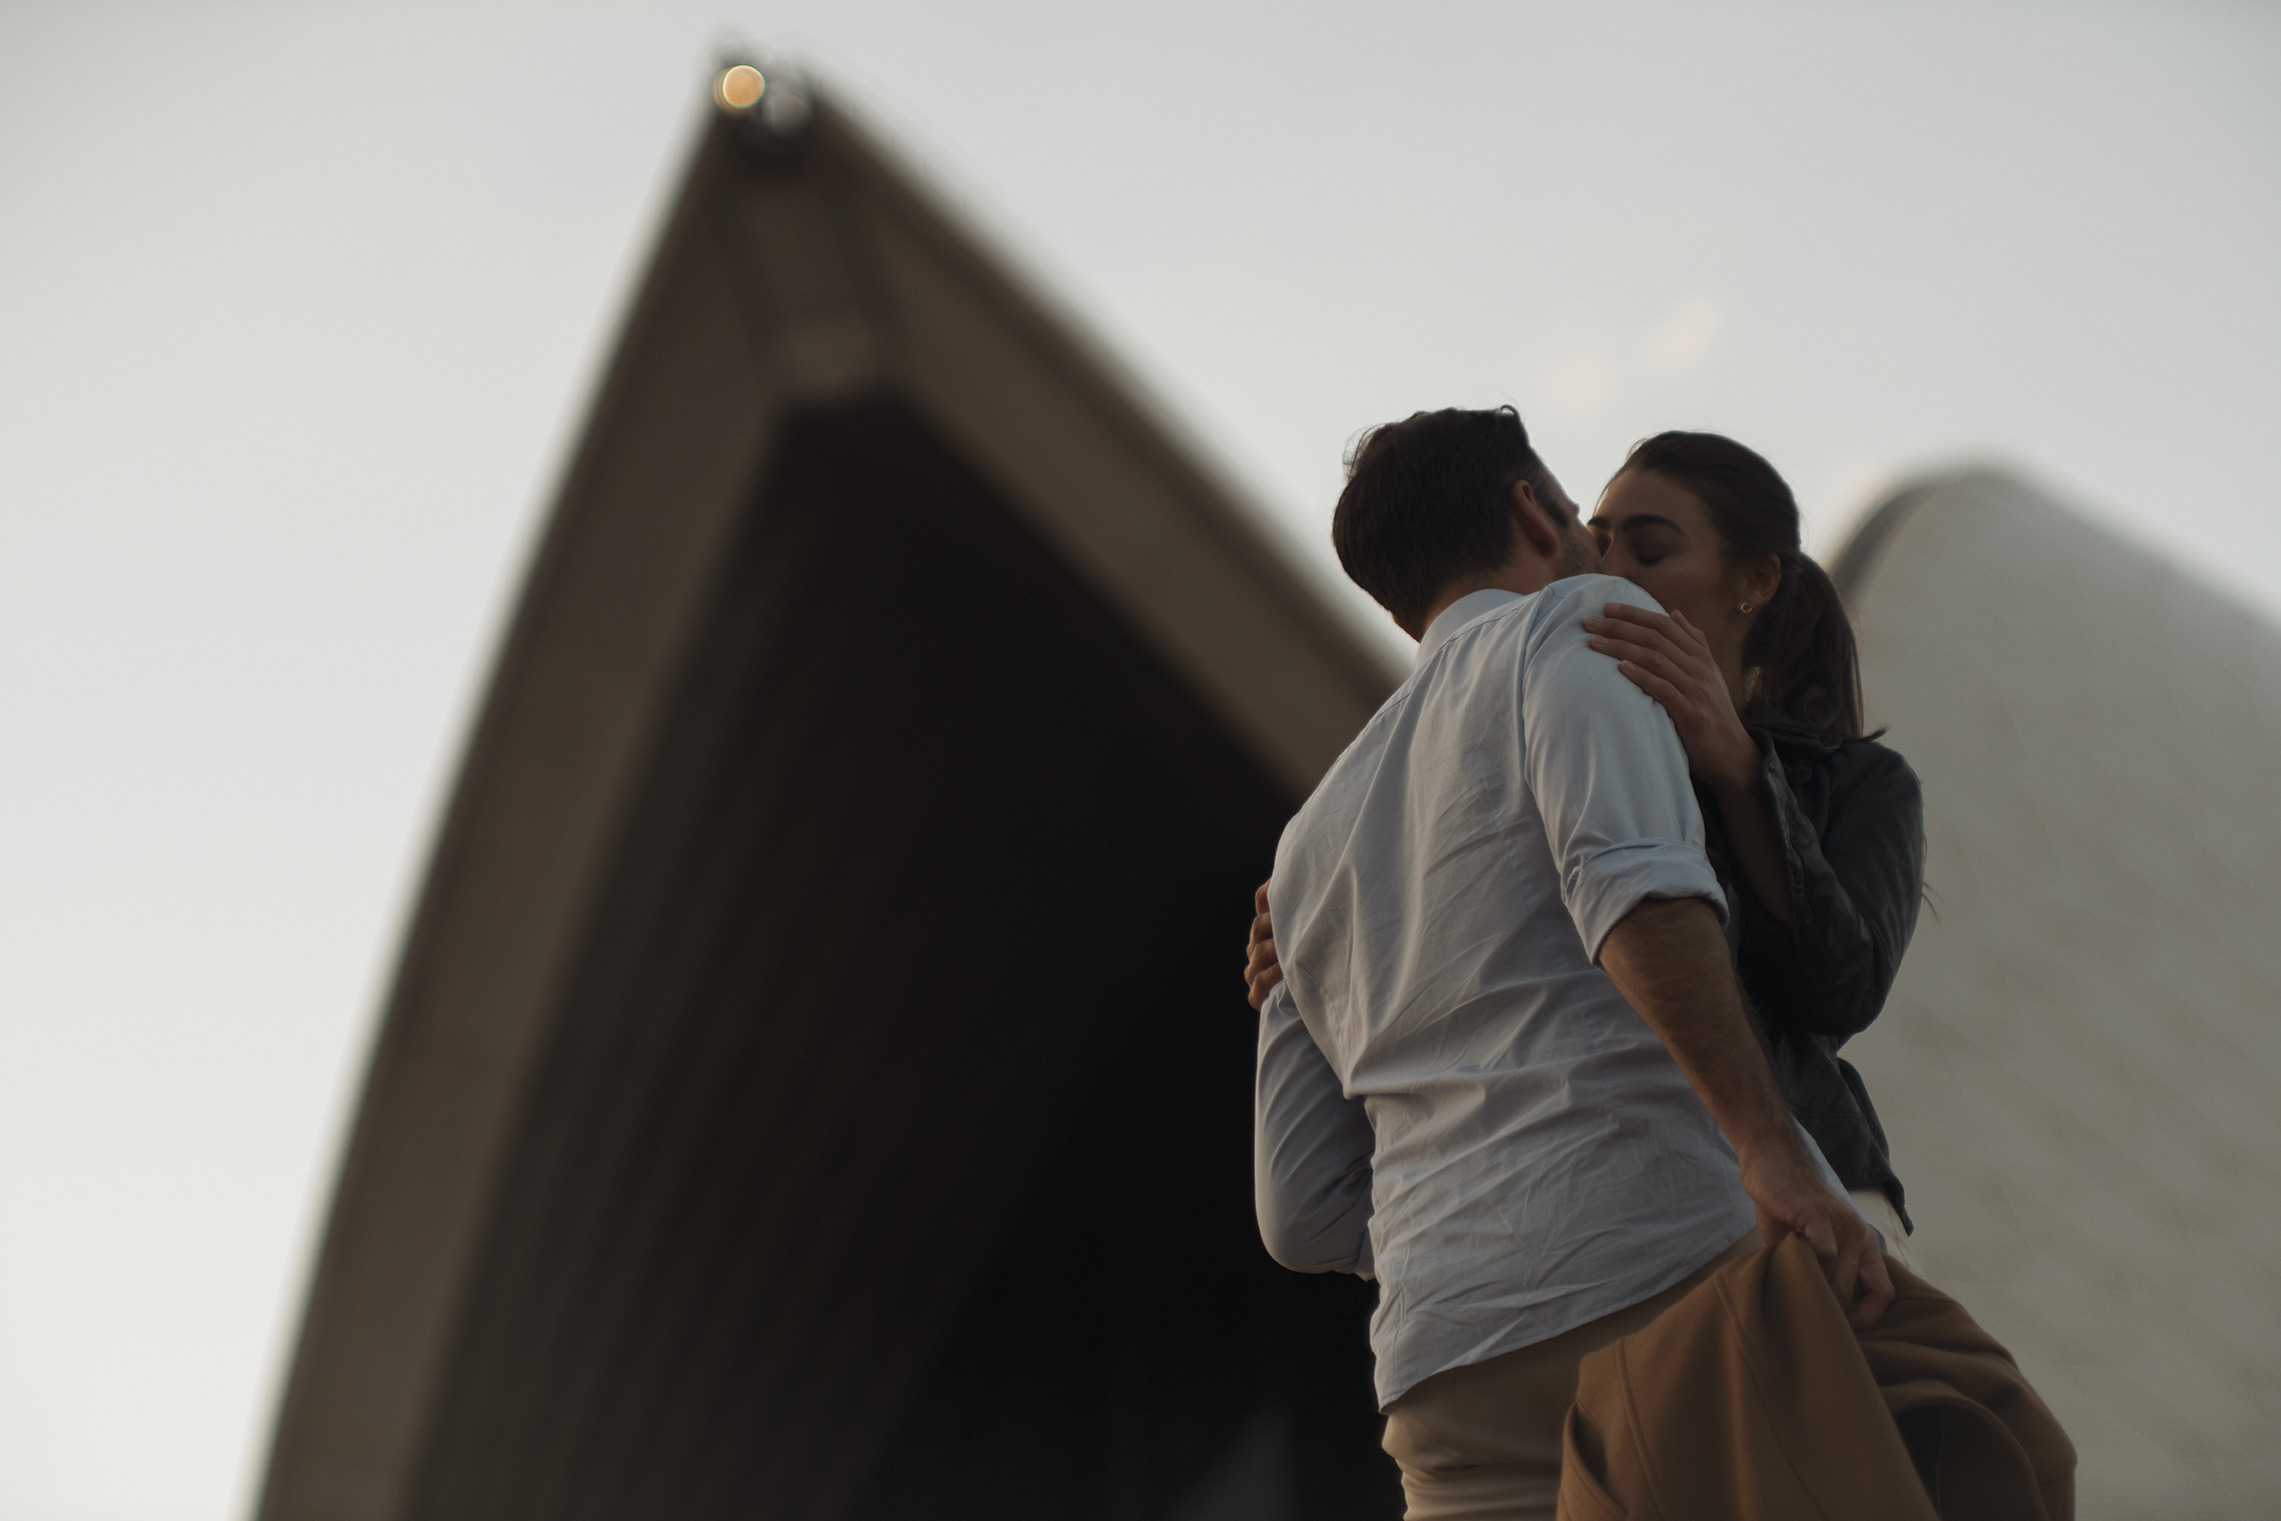 Destination NSW - Opera House Lovers